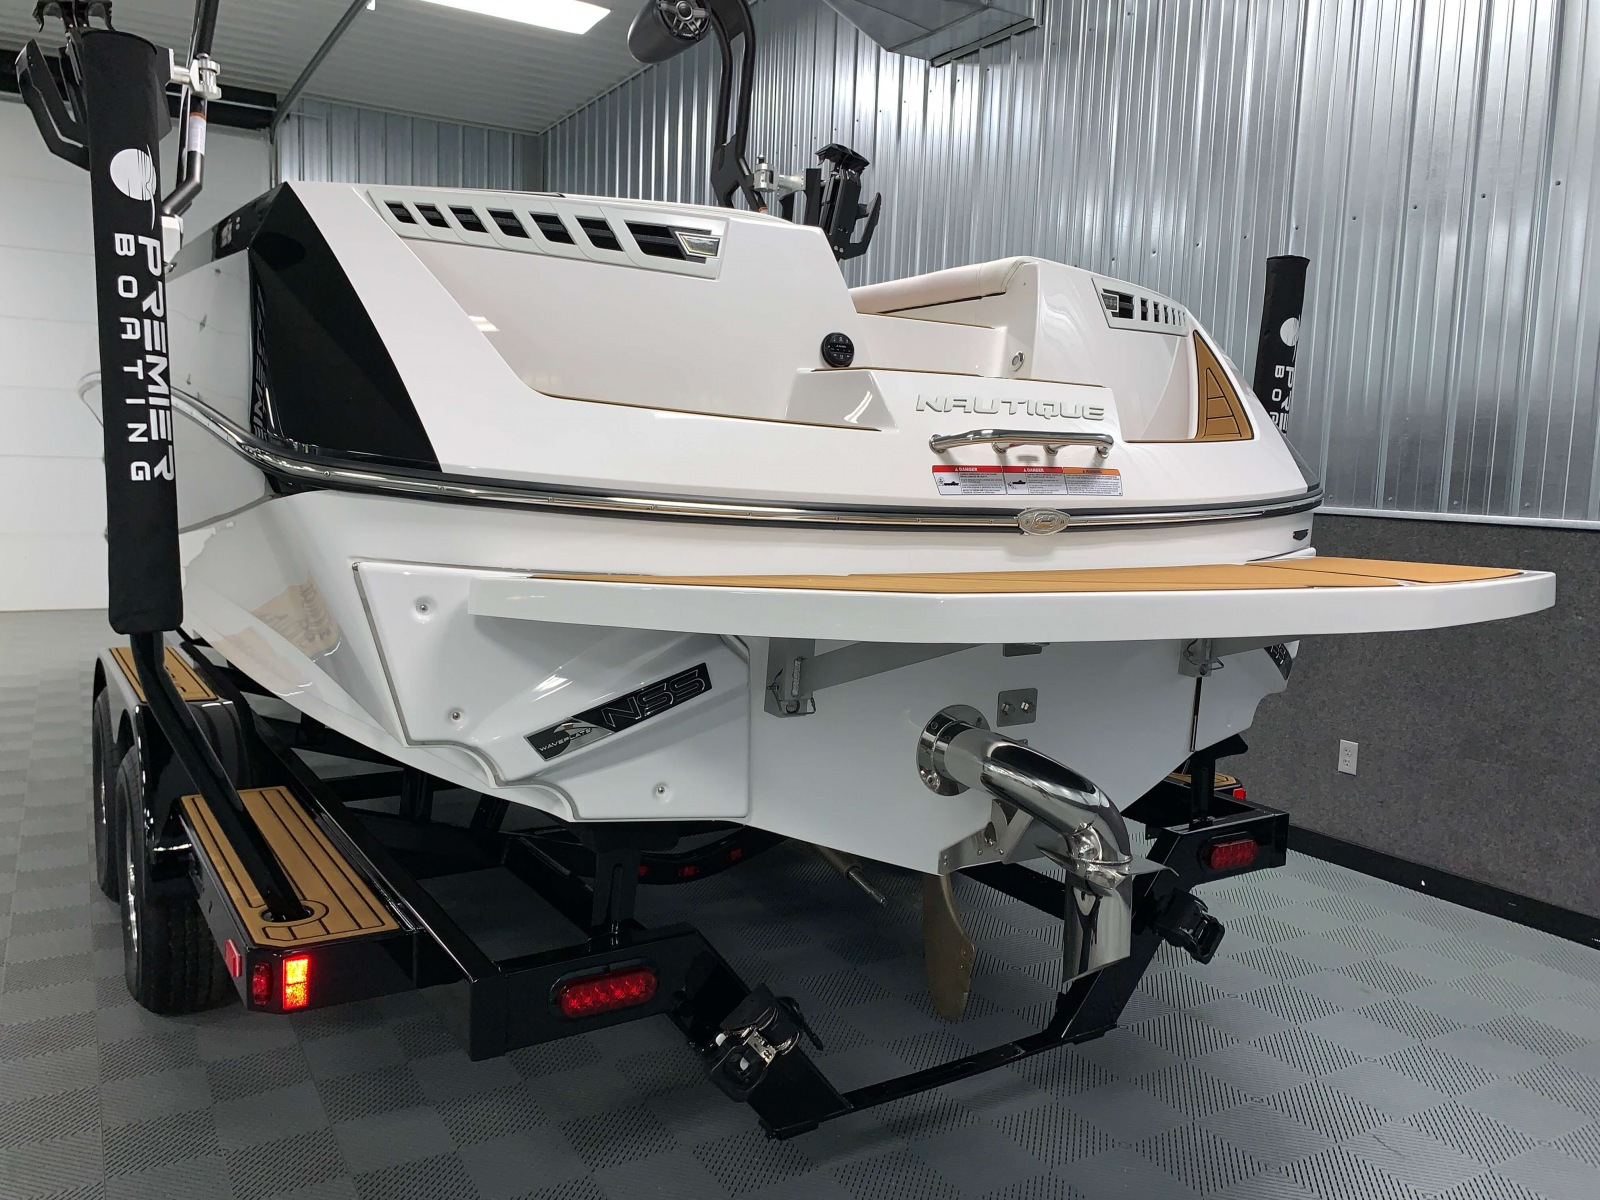 Nautique Surf System of the 2021 Nautique 230 Wake Boat